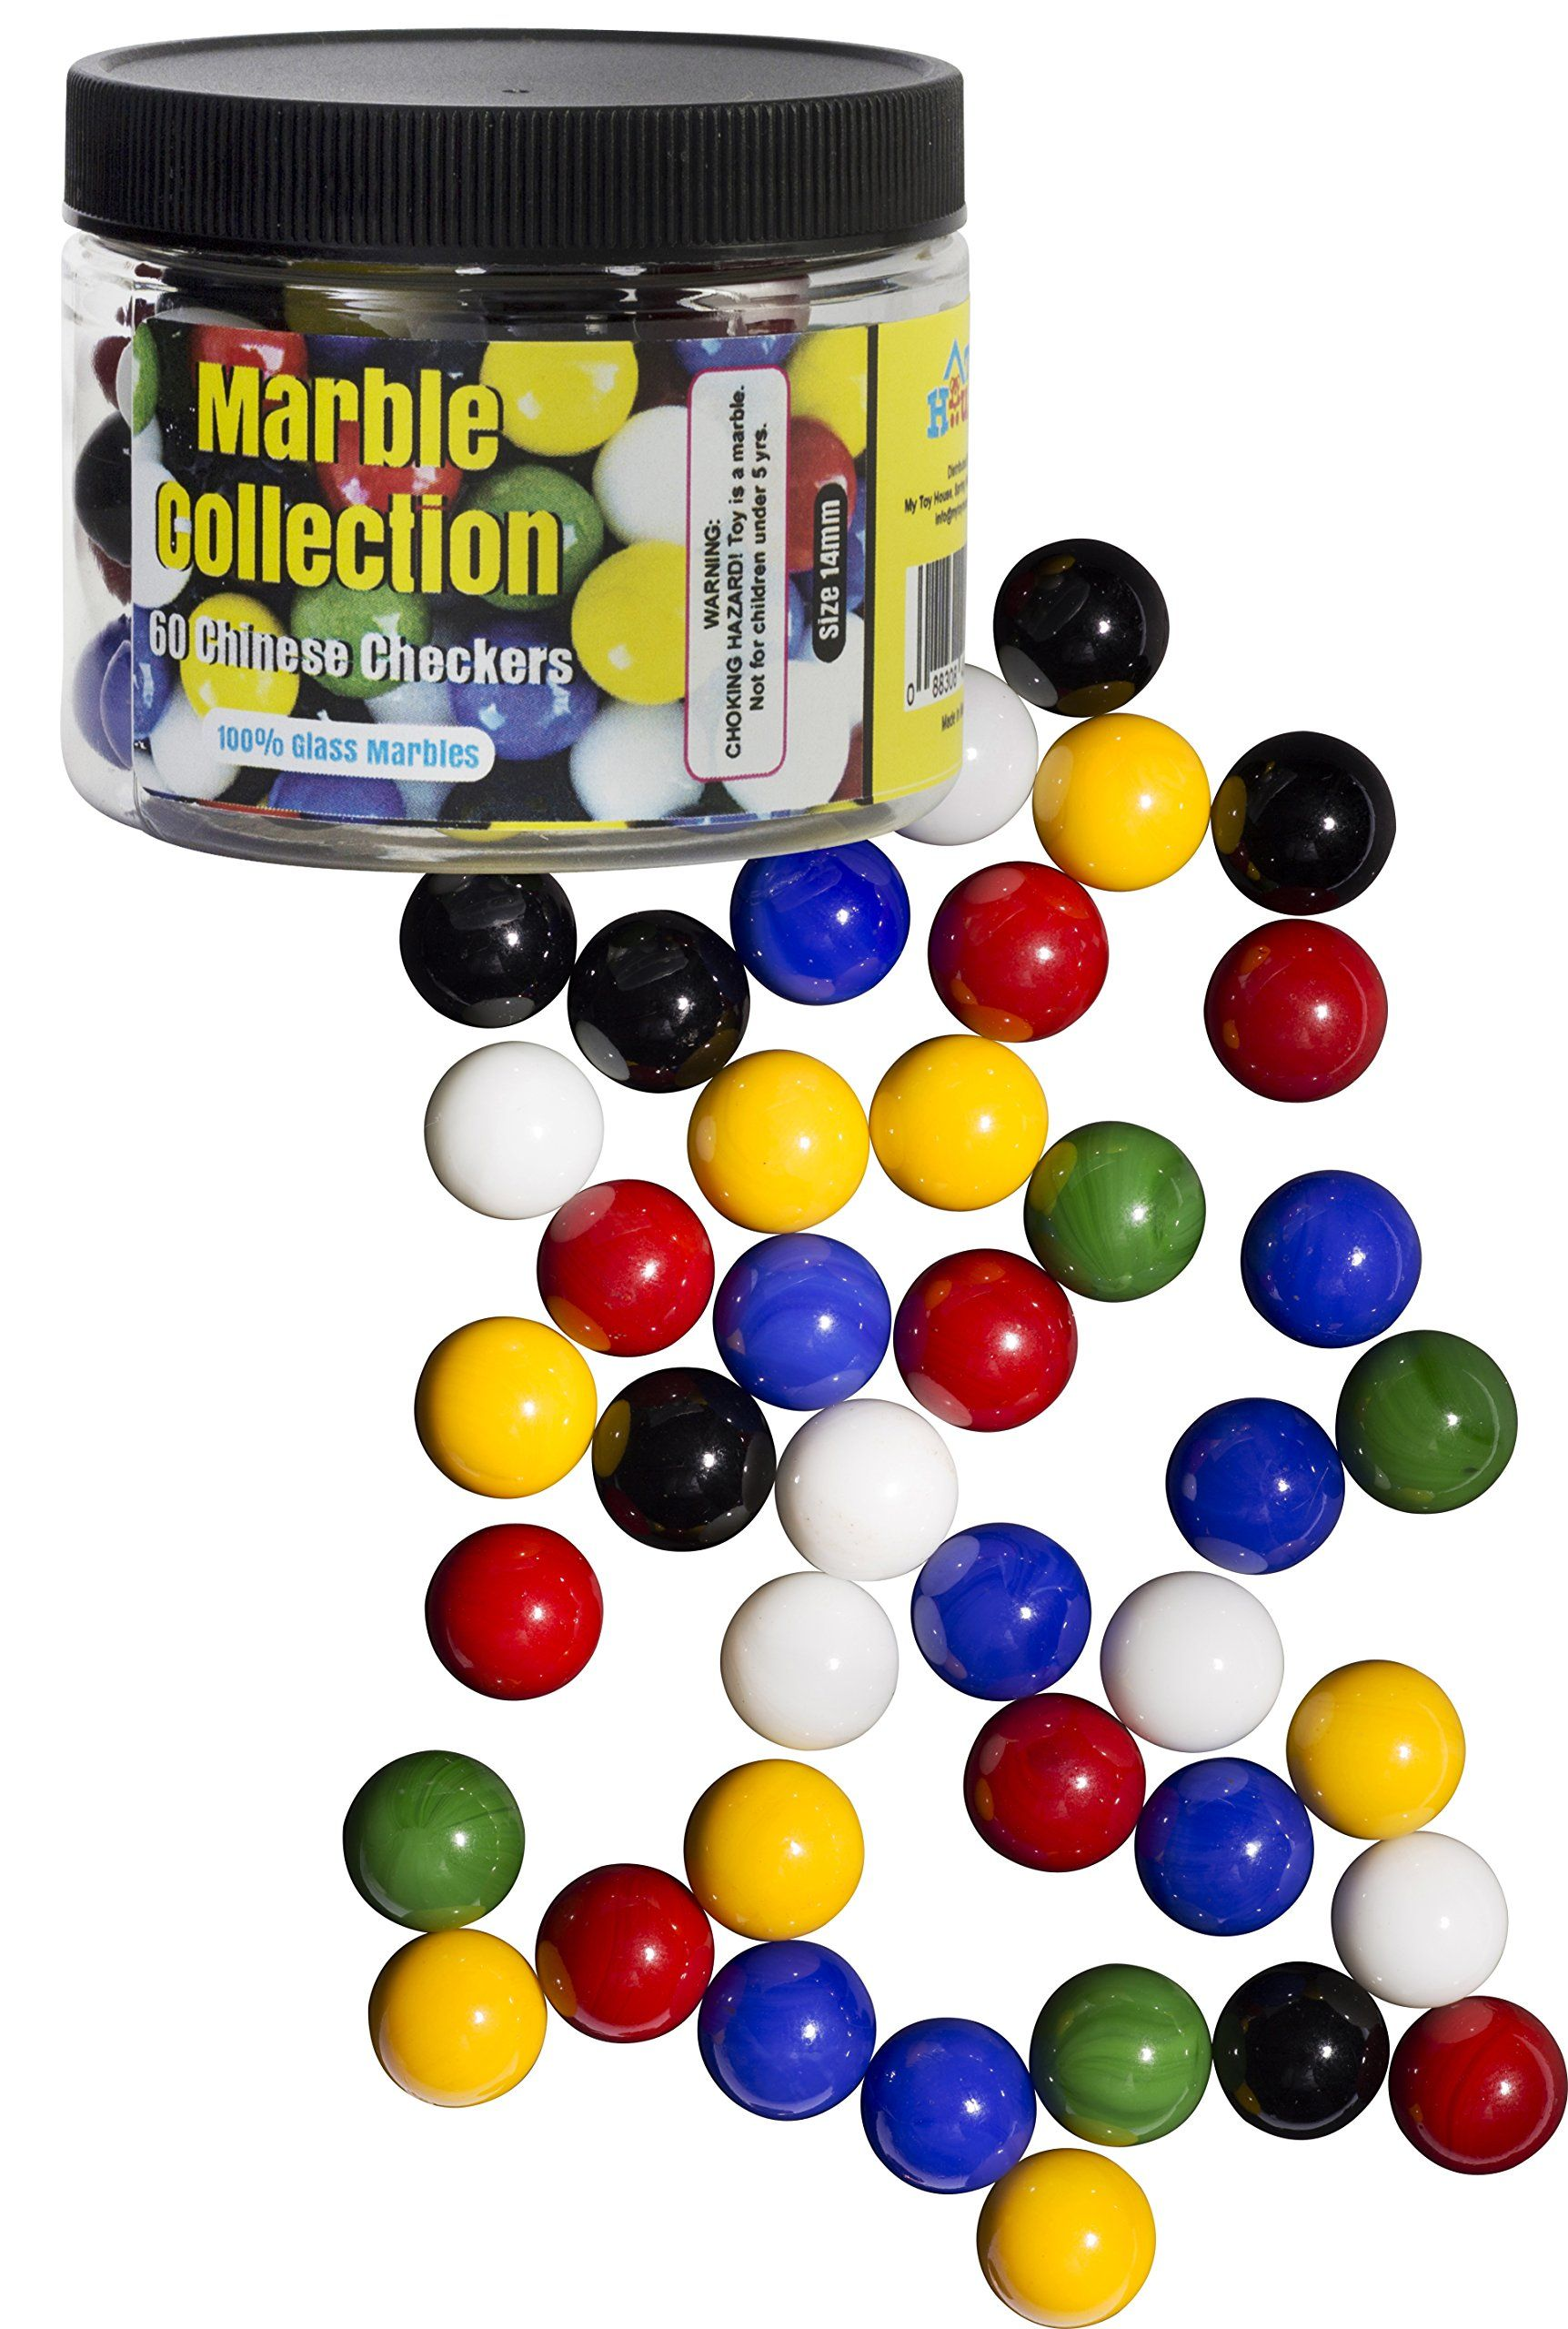 Chinese Checkers Glass Marbles Set Of 60 10 Of Each Color With Portable Container With Marble Jar For Easy Storage And Endl Glass Marbles Marble Jar Marble